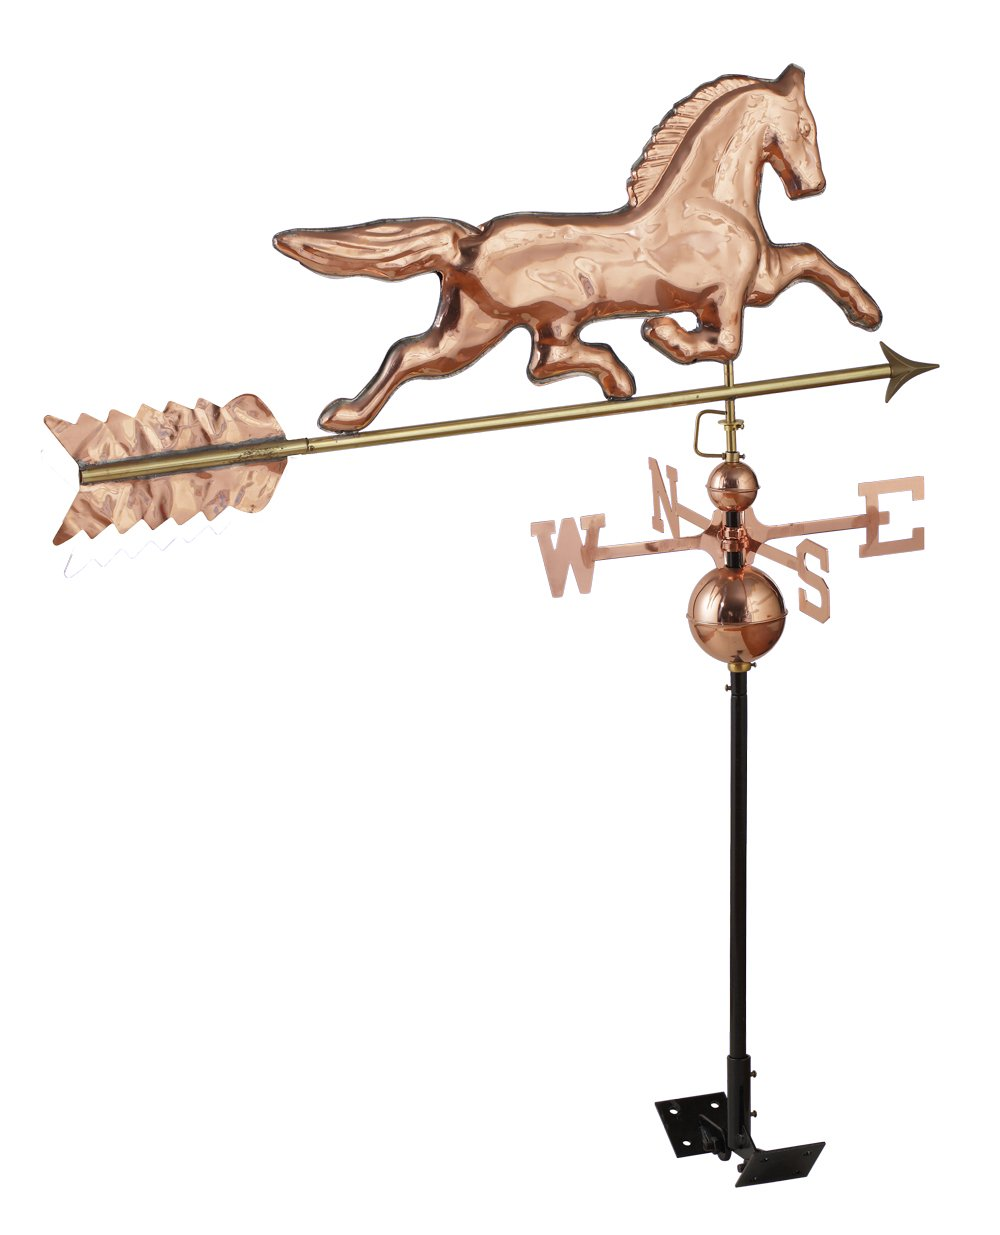 RUDY HARDWARE Stunning Full Size Polished Copper Trotting Horse Weathervane with Adjustable Roof Mount, Increase Curb Appeal for Home, Barn, Shed or as Garden Decor